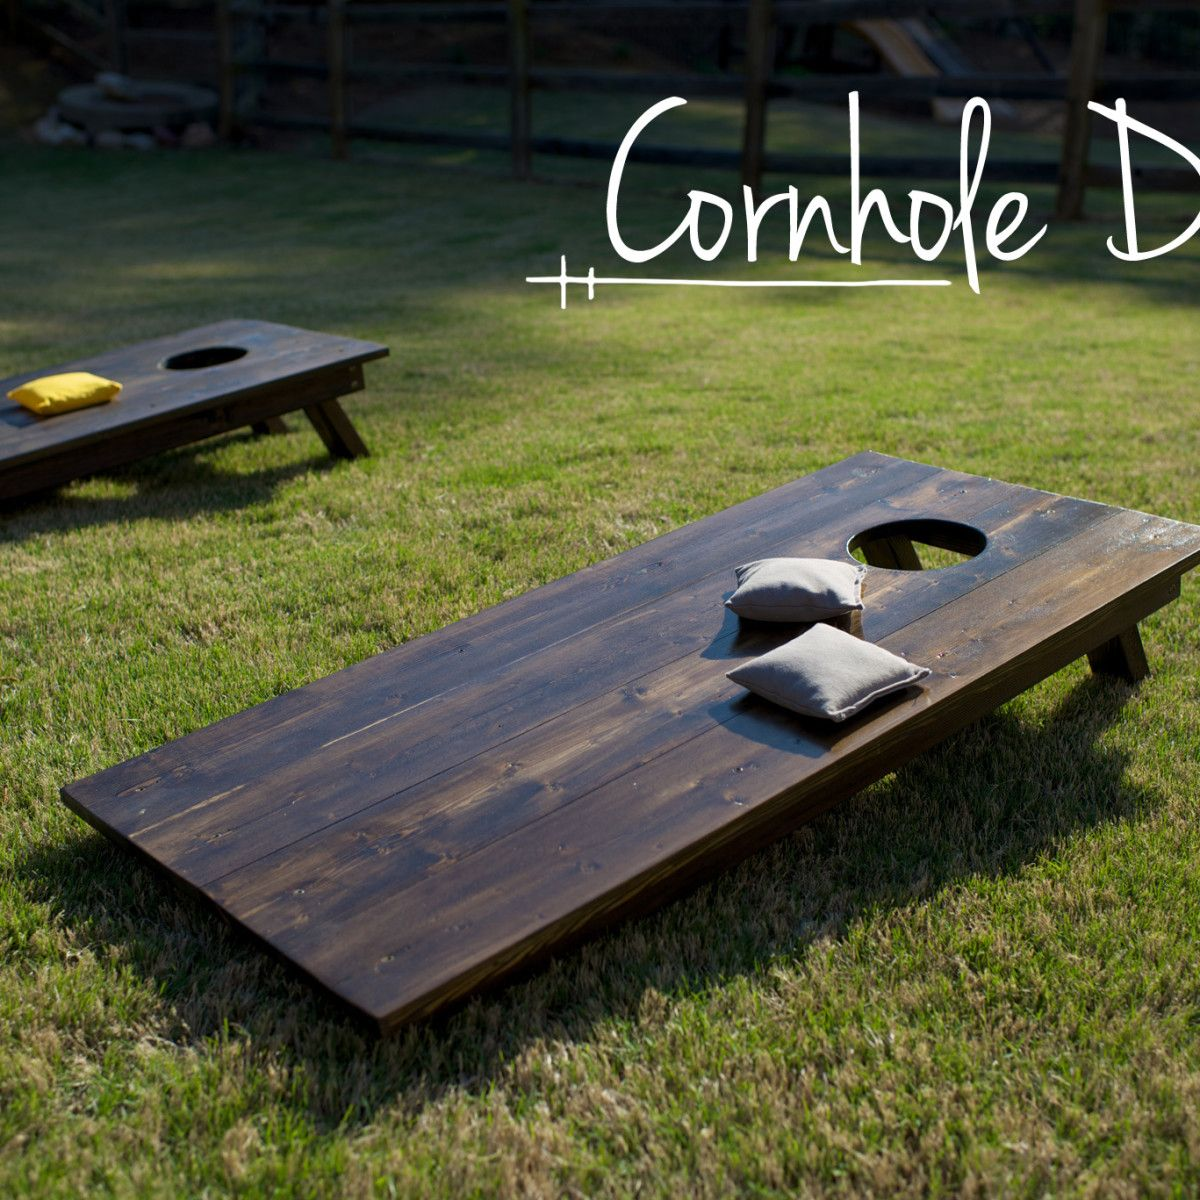 Cornhole Diy Corn Hole Diy Woodworking Projects Projects